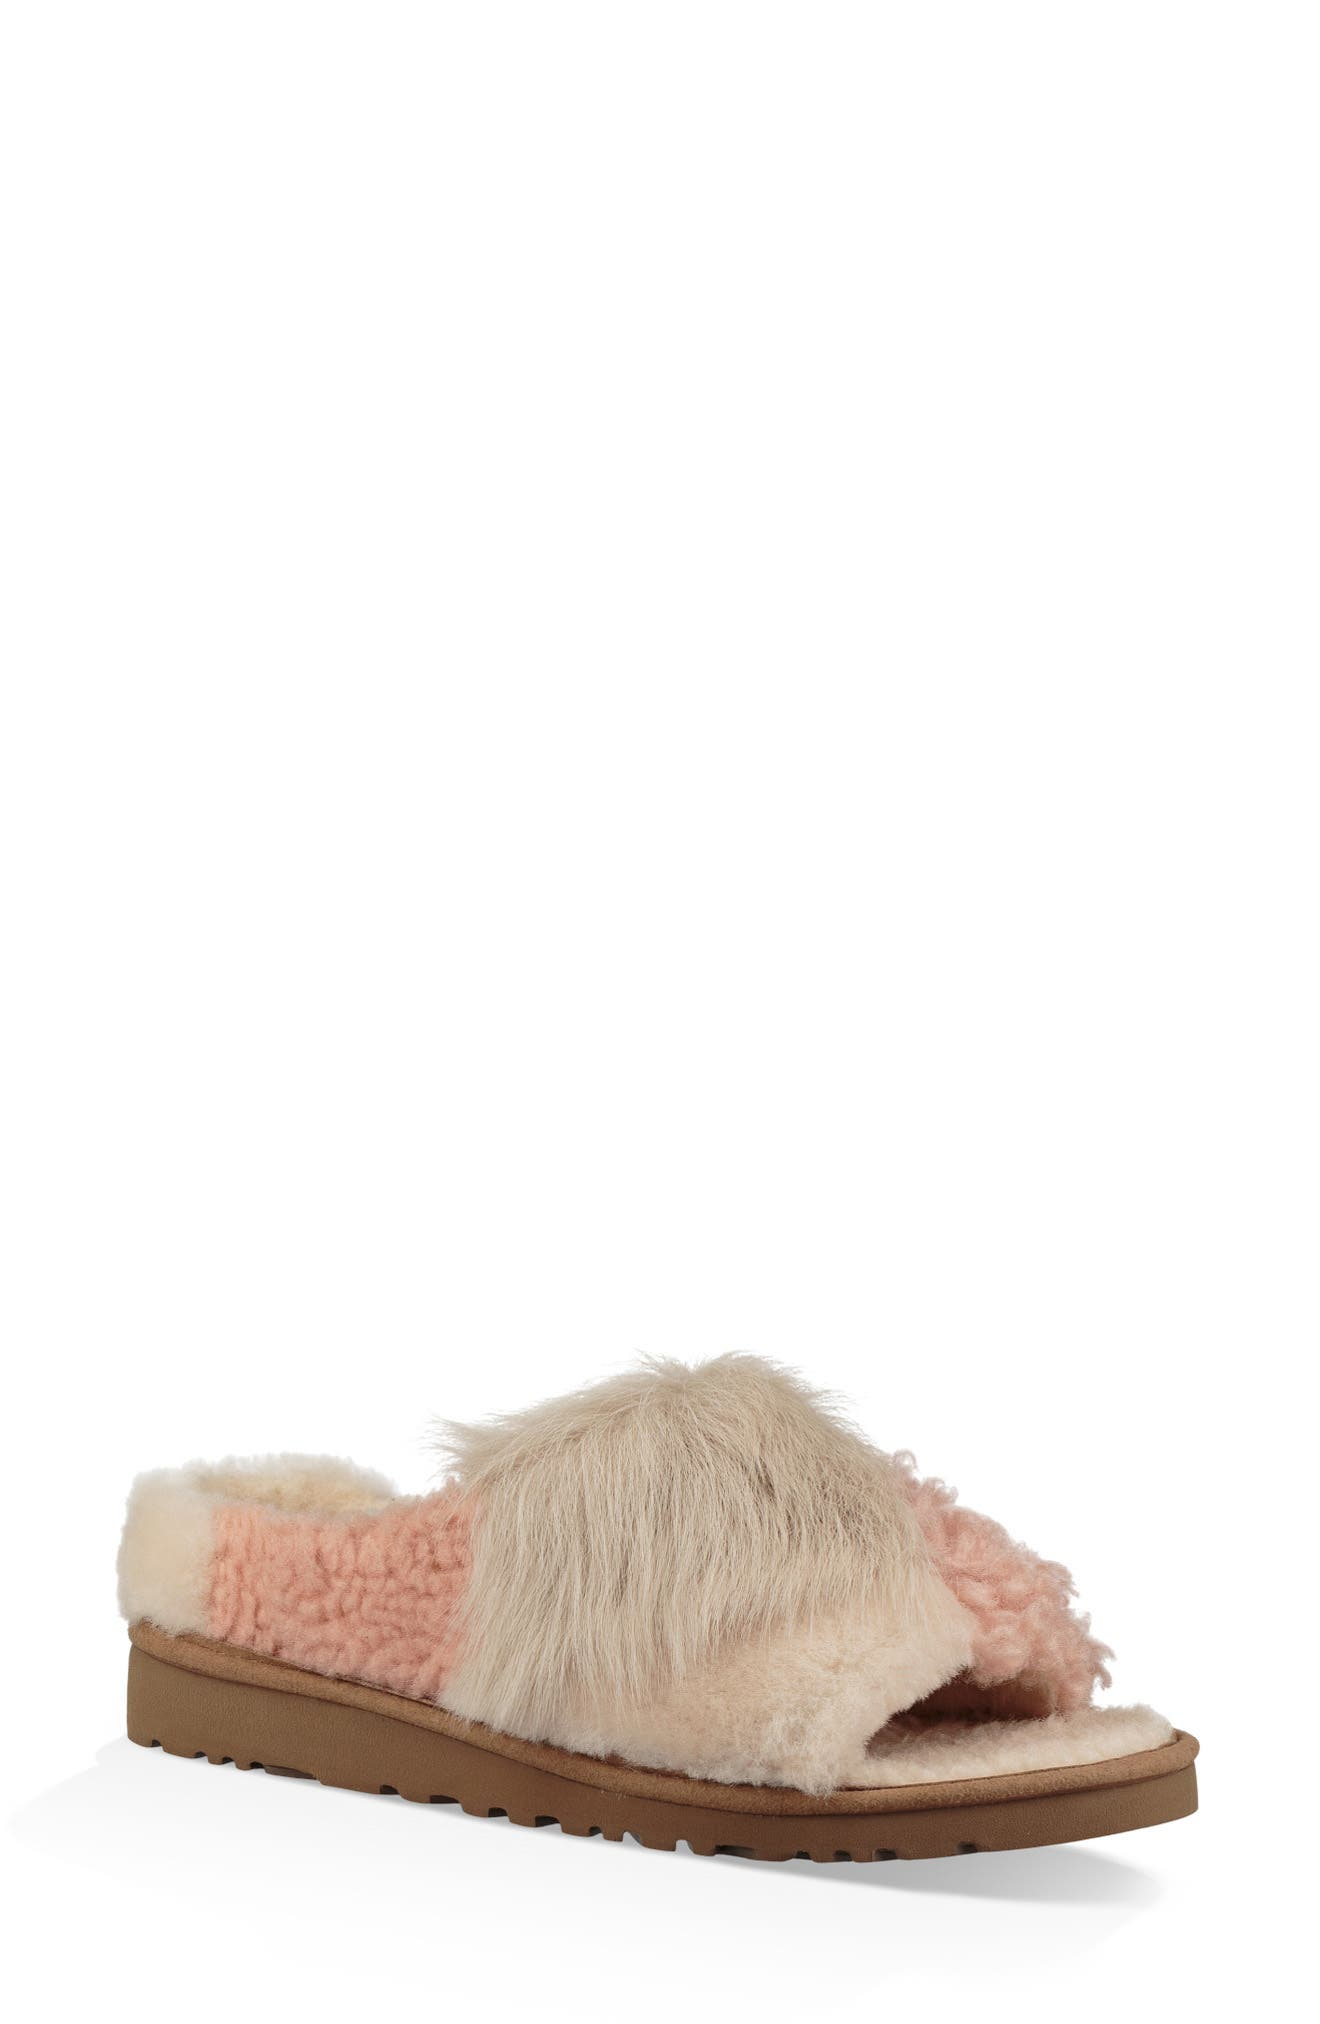 Patchwork Fluff Slipper,                         Main,                         color, CHESTNUT